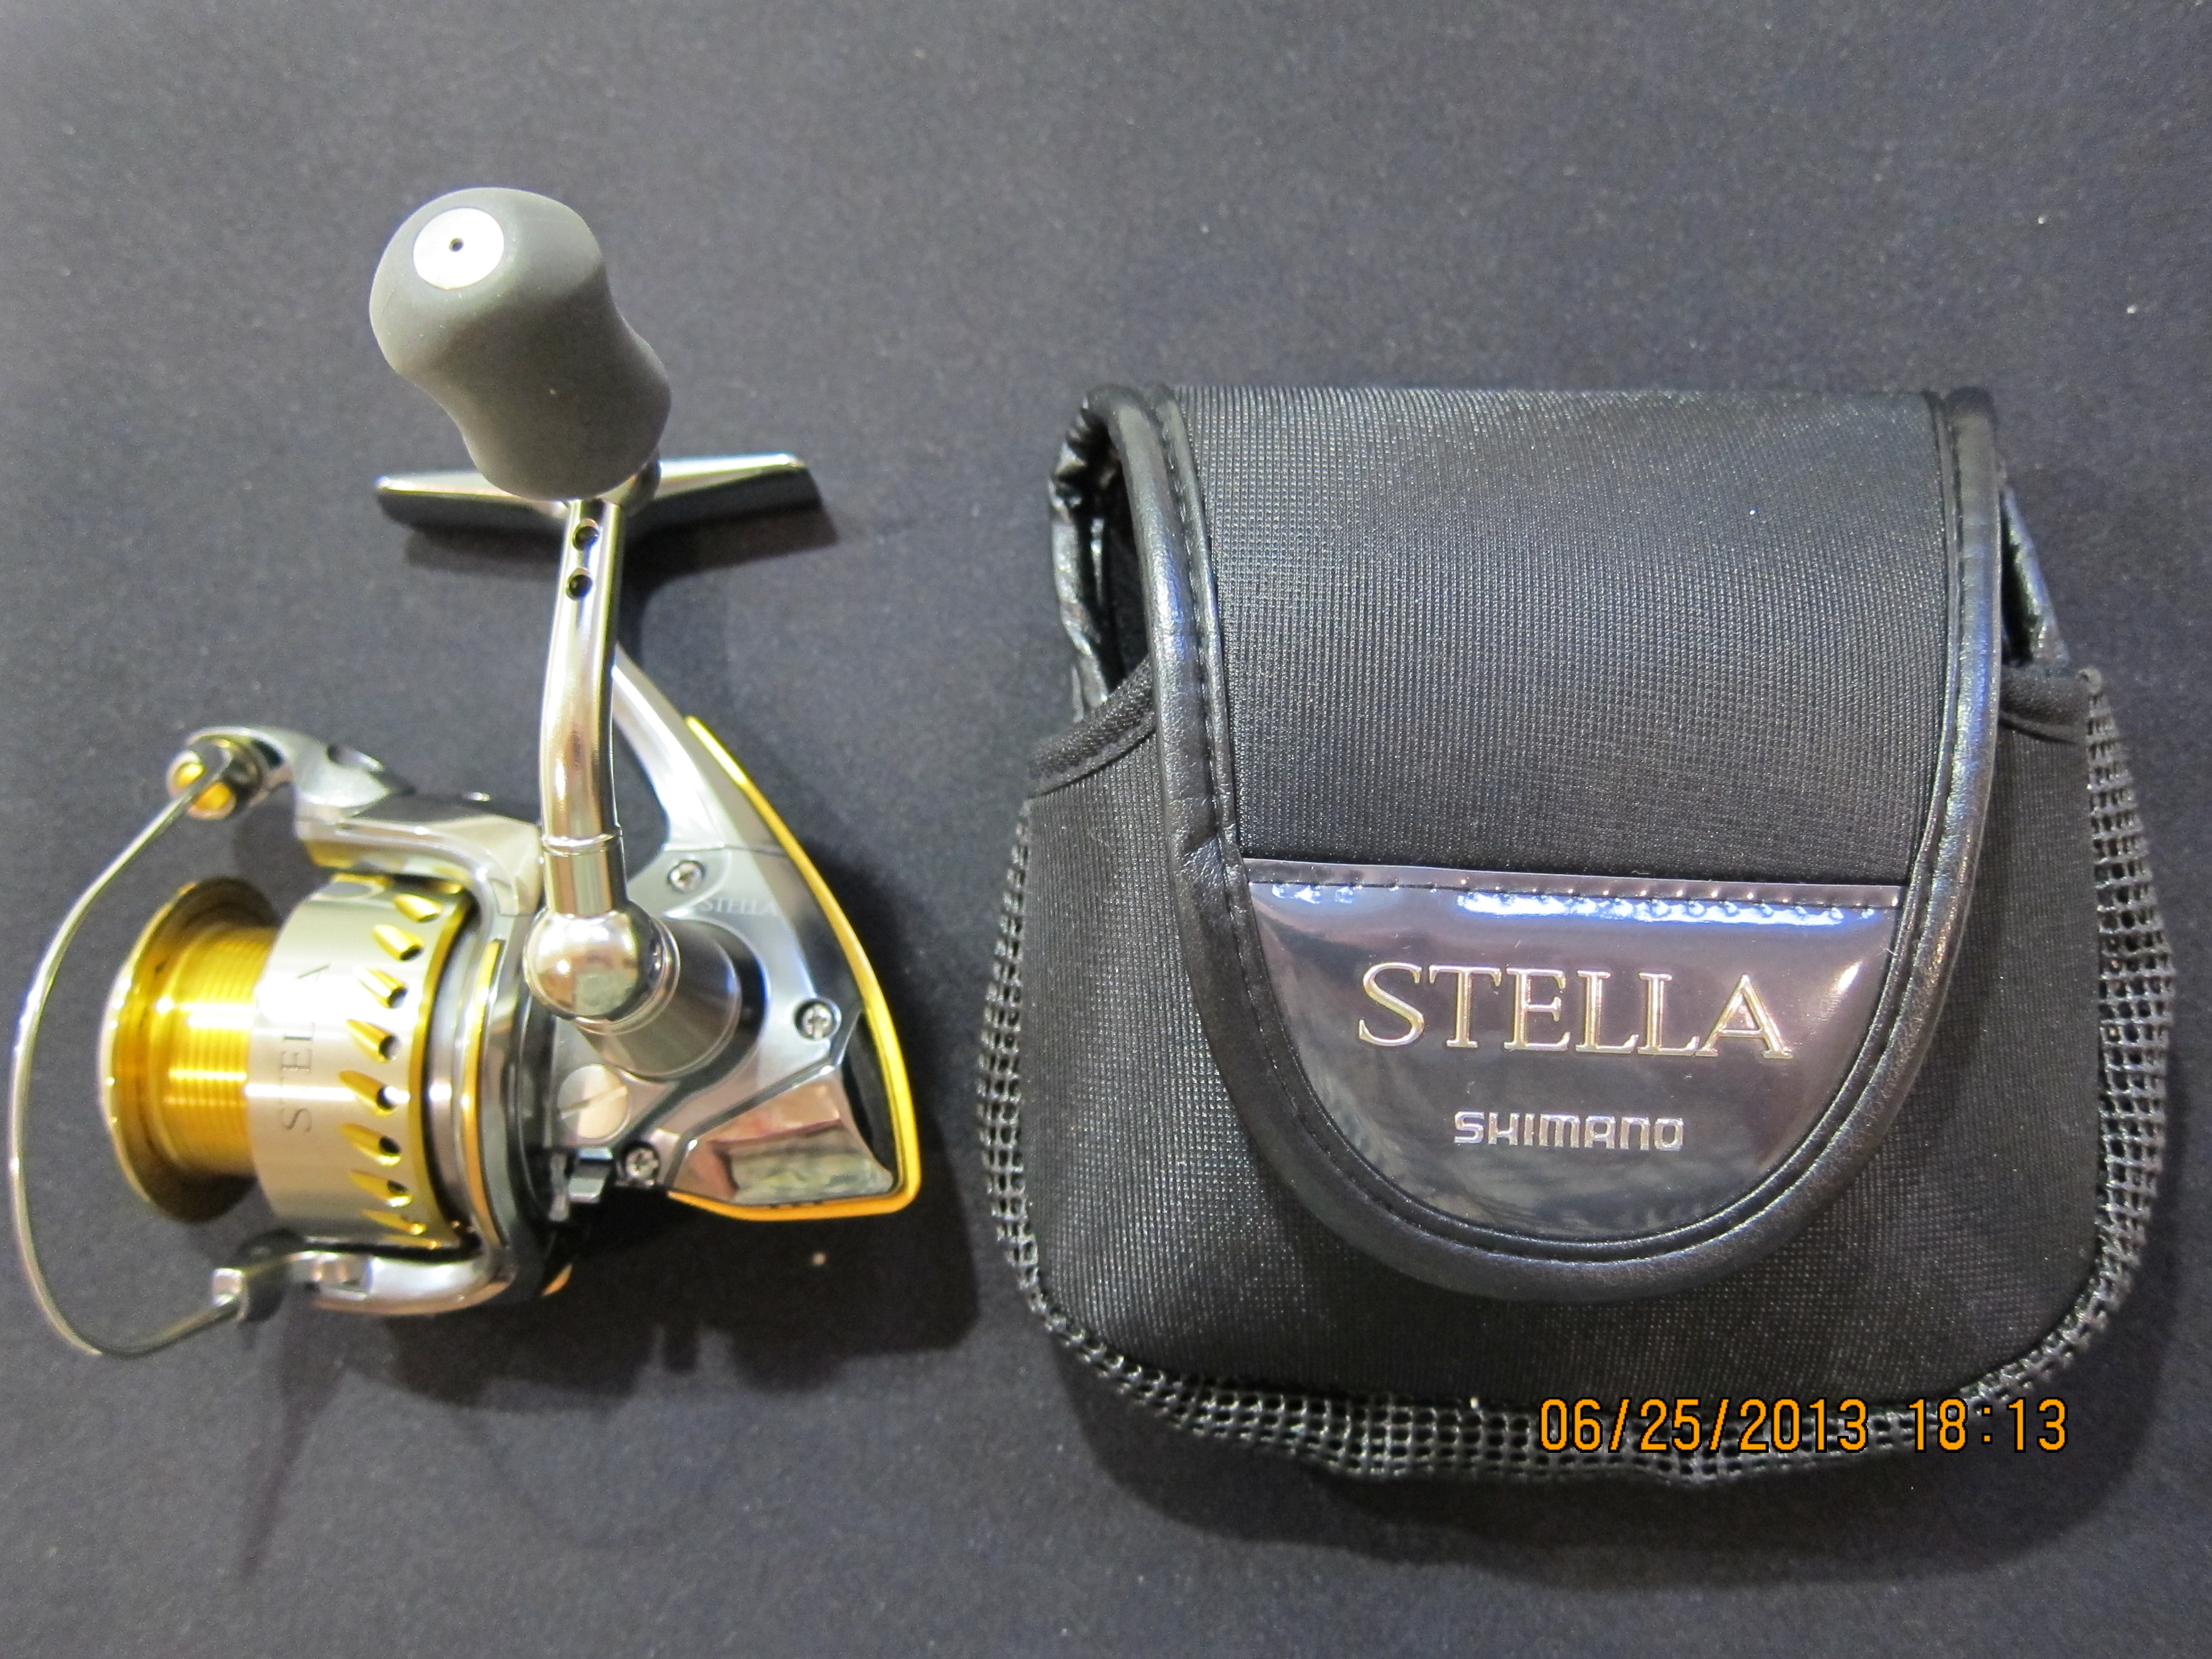 WTT New Shimano Stella 2500FB for ??? - General Buy/Sell